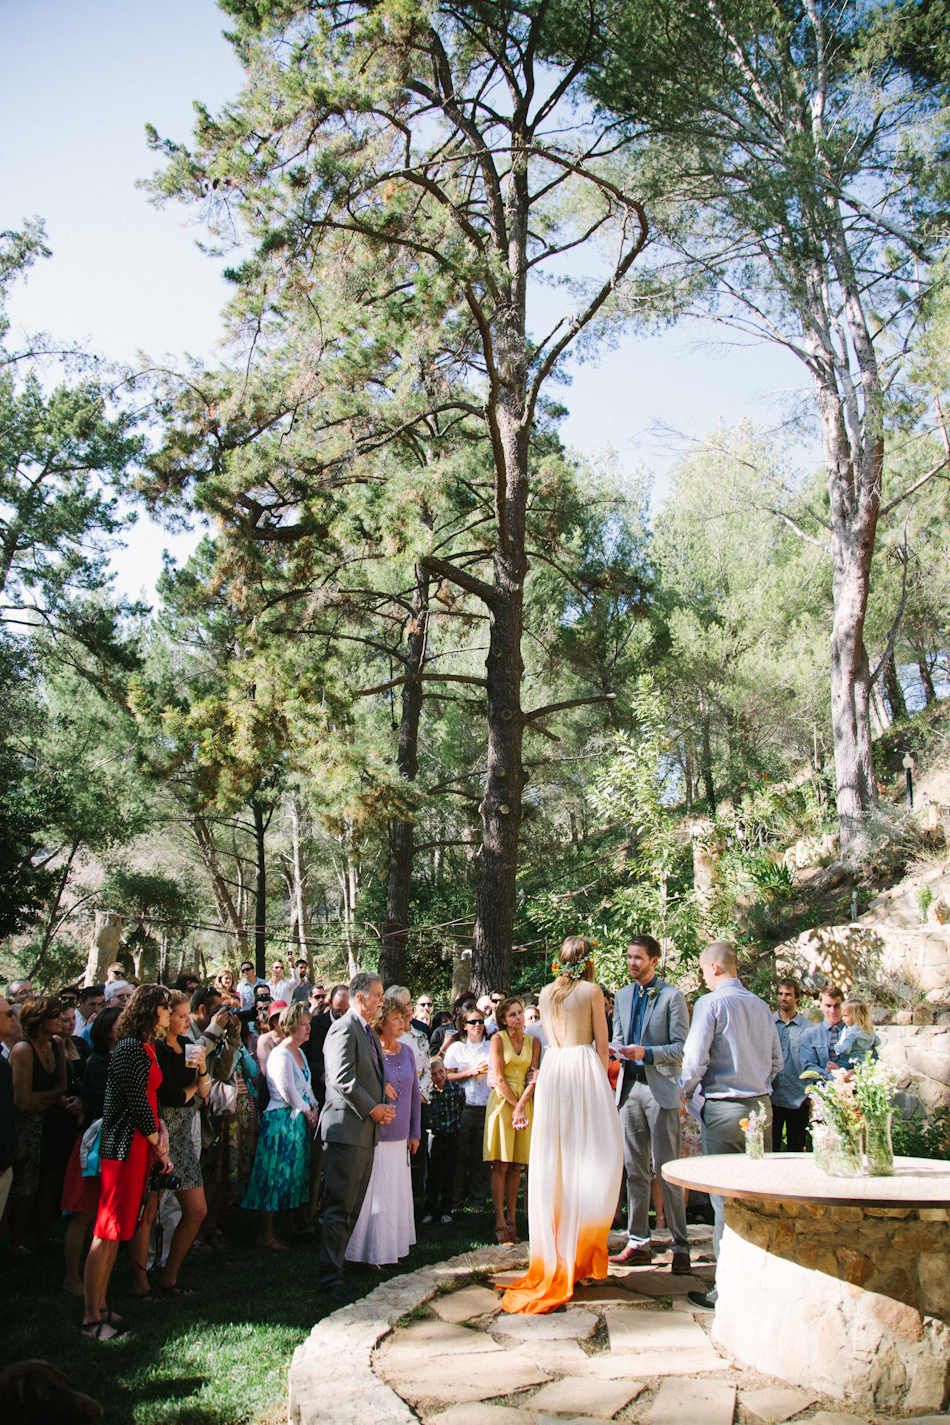 Ceremony - Jenny Markham Photography